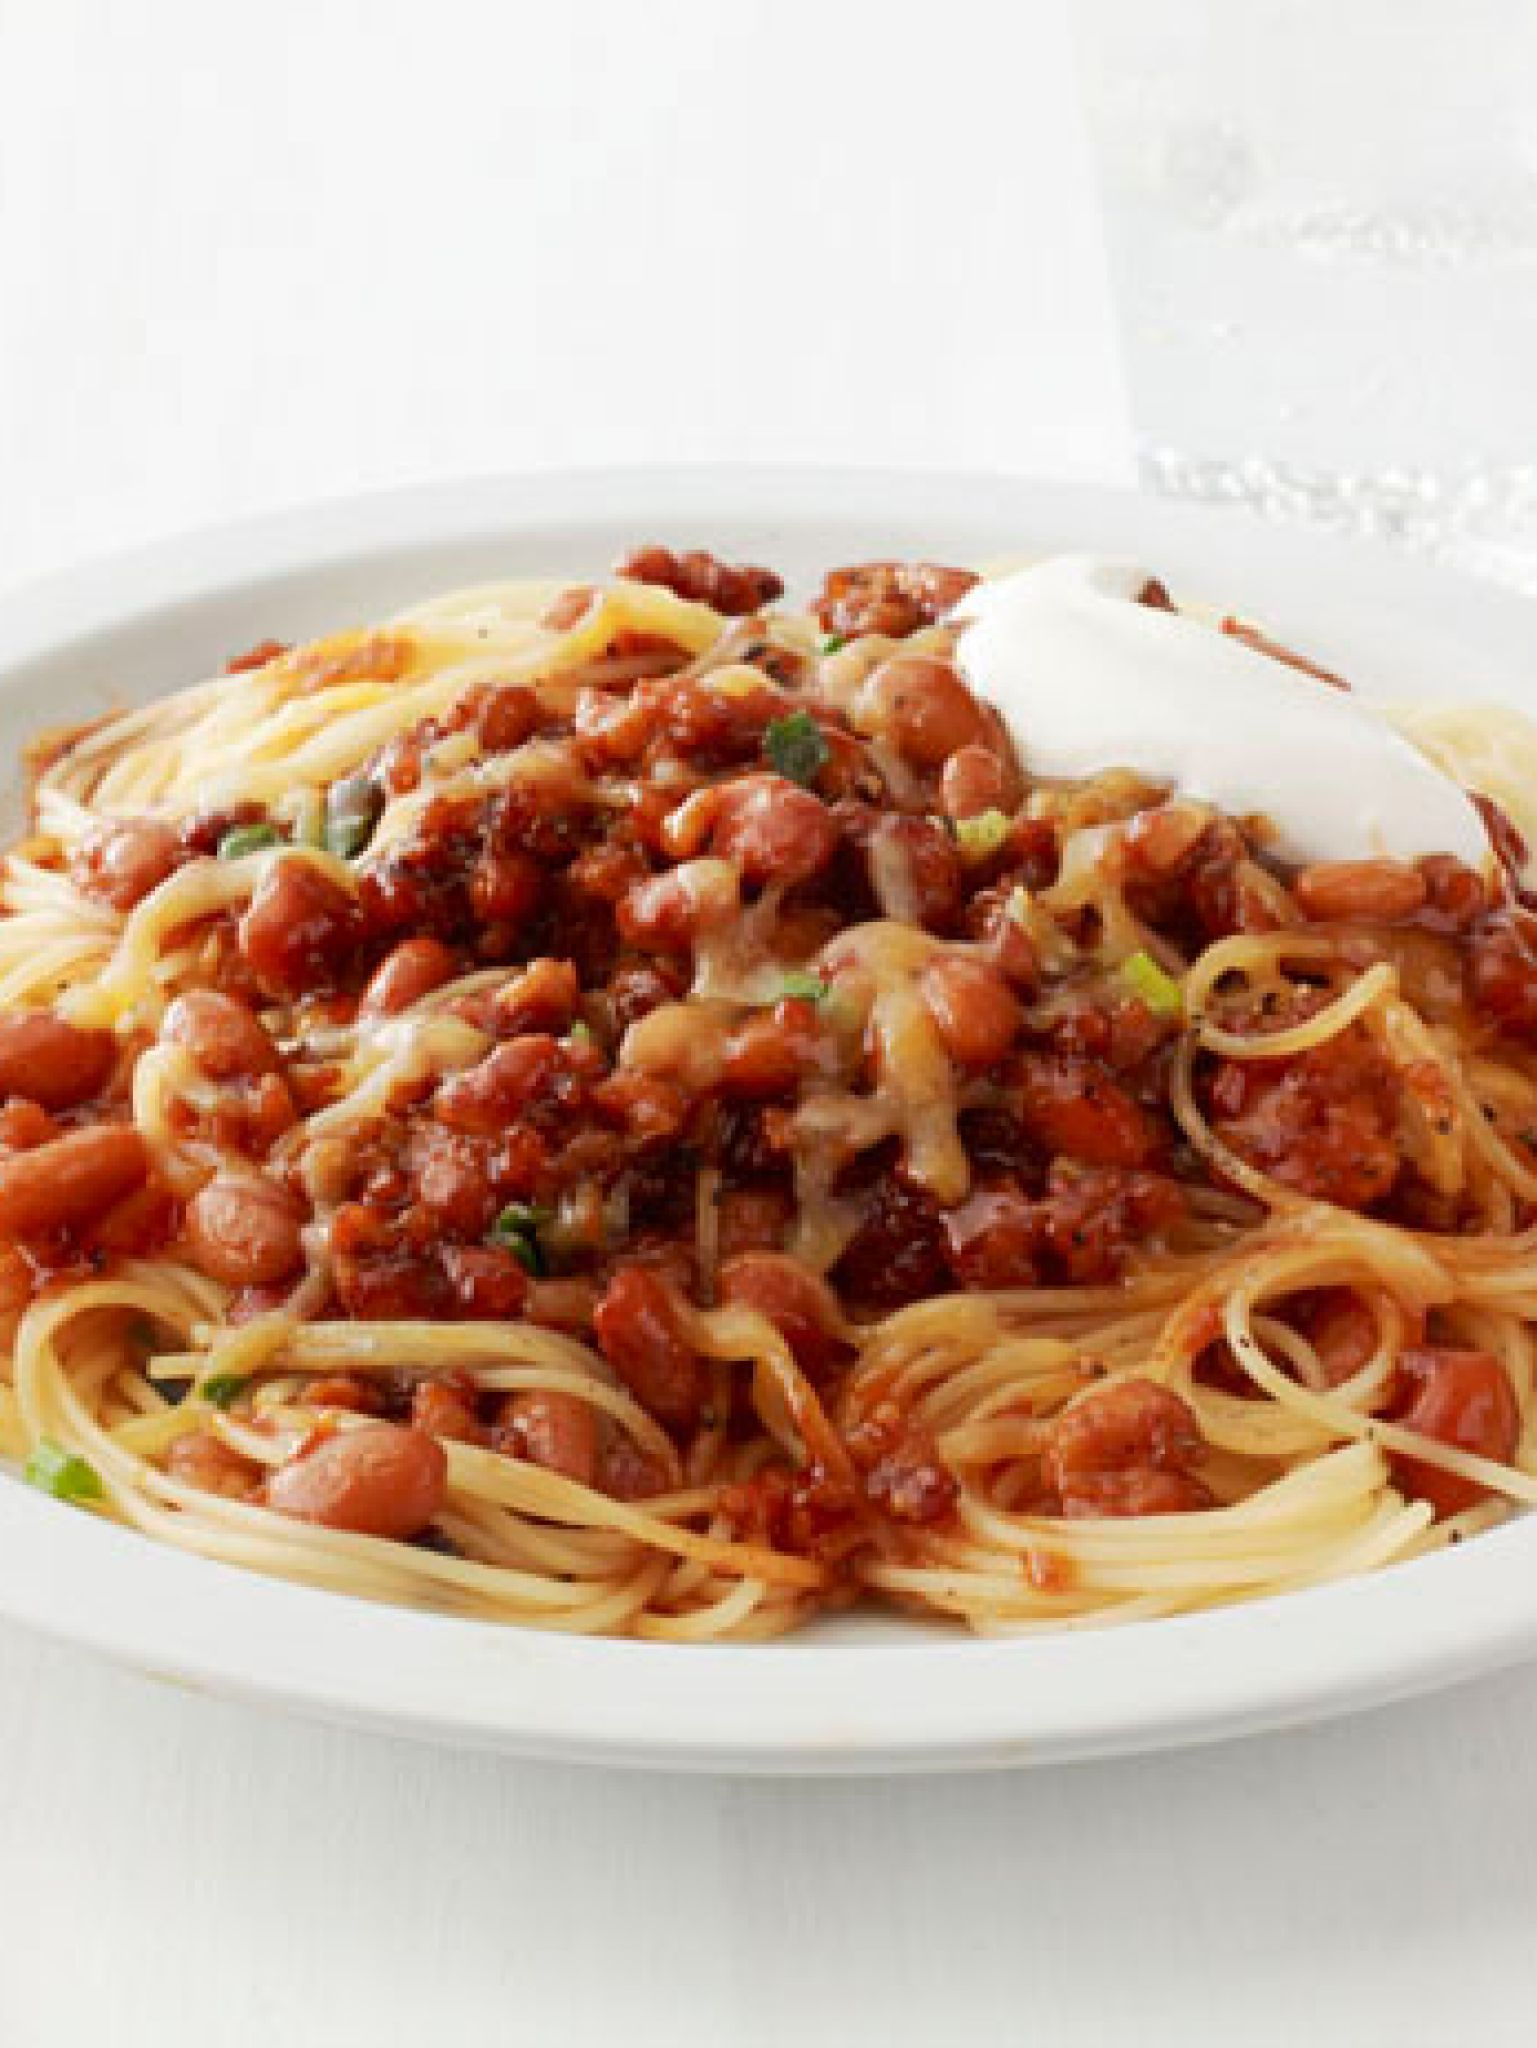 Spaghetti with quick turkey chili recipe turkey chili chili spaghetti with quick turkey chili forumfinder Choice Image